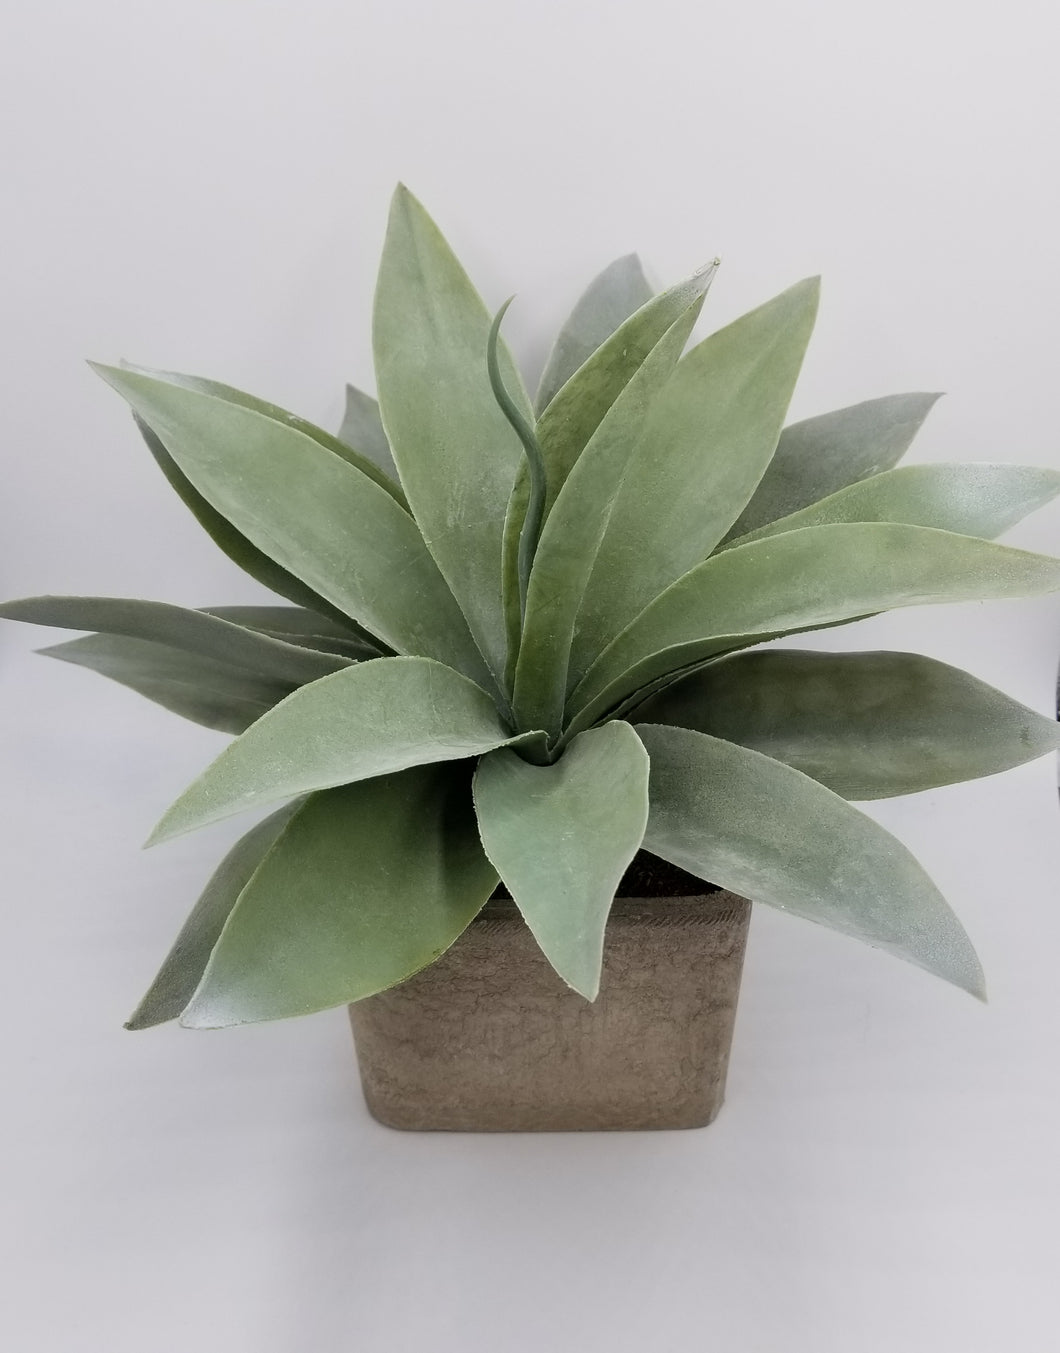 LARGE ARTIFICIAL SUCCULENT IN A SQUARE POT